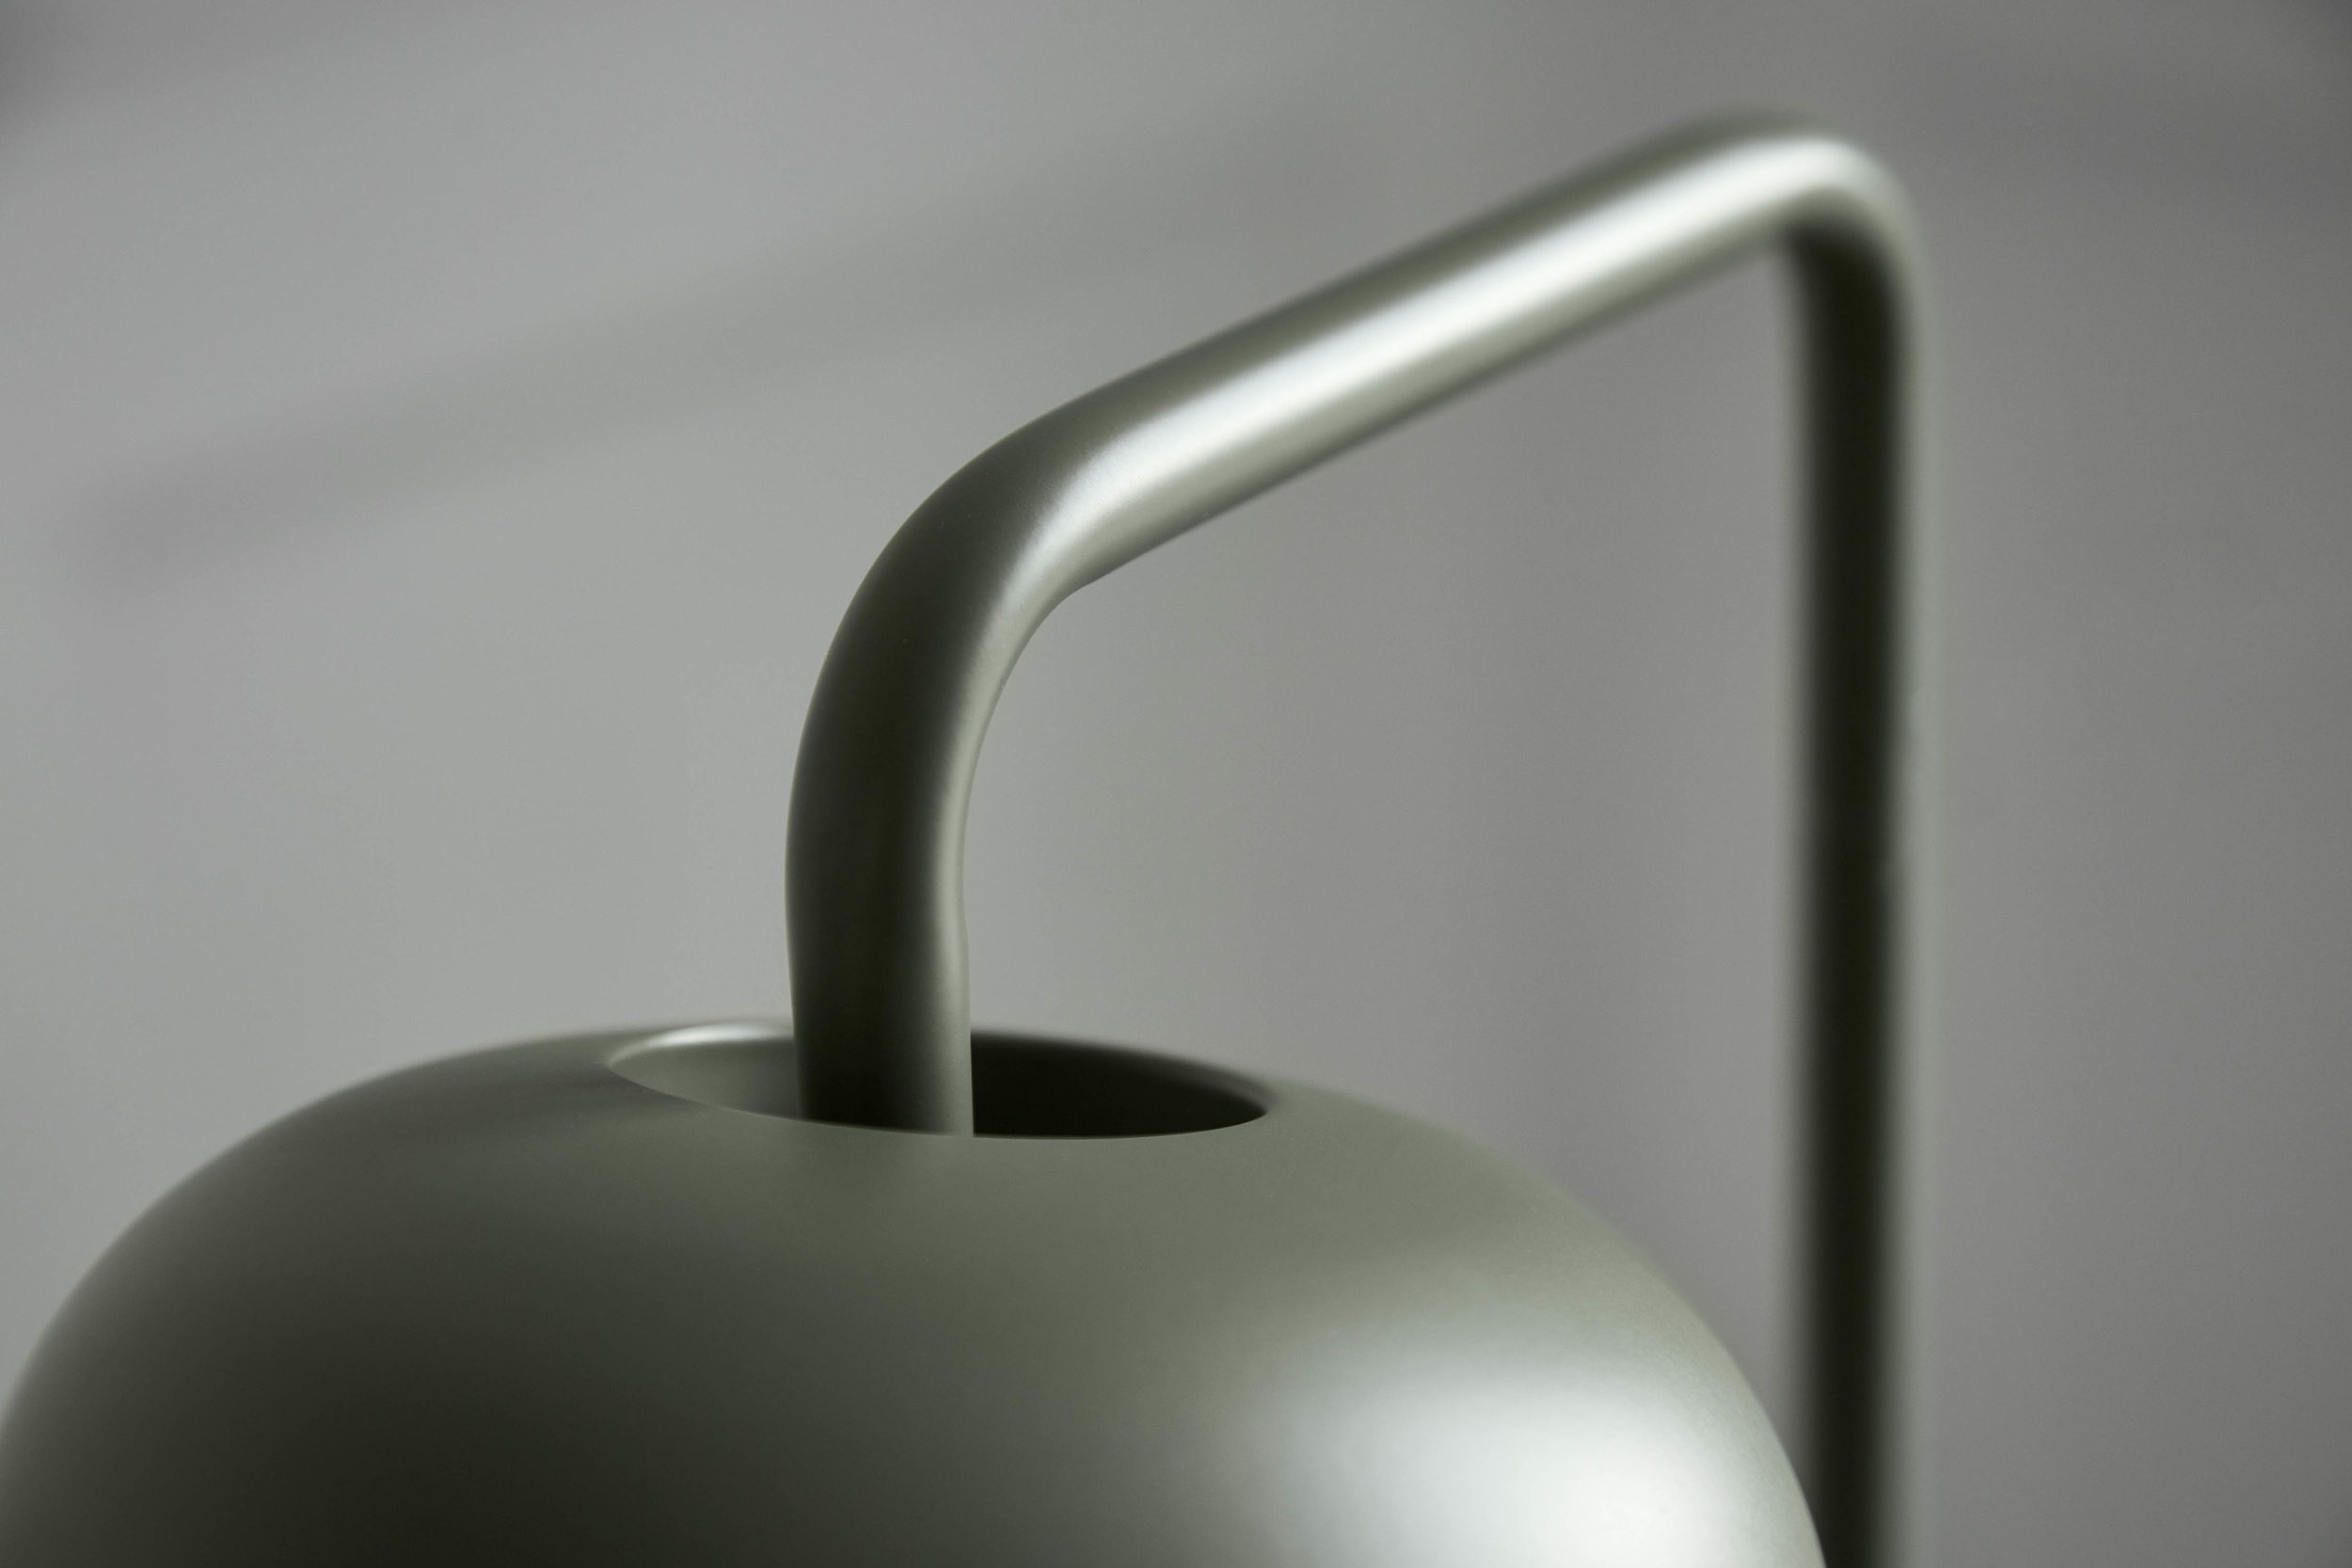 Chill floor lamp green matt - lifestyle closeup Teglgaardsvej 3303.jpg